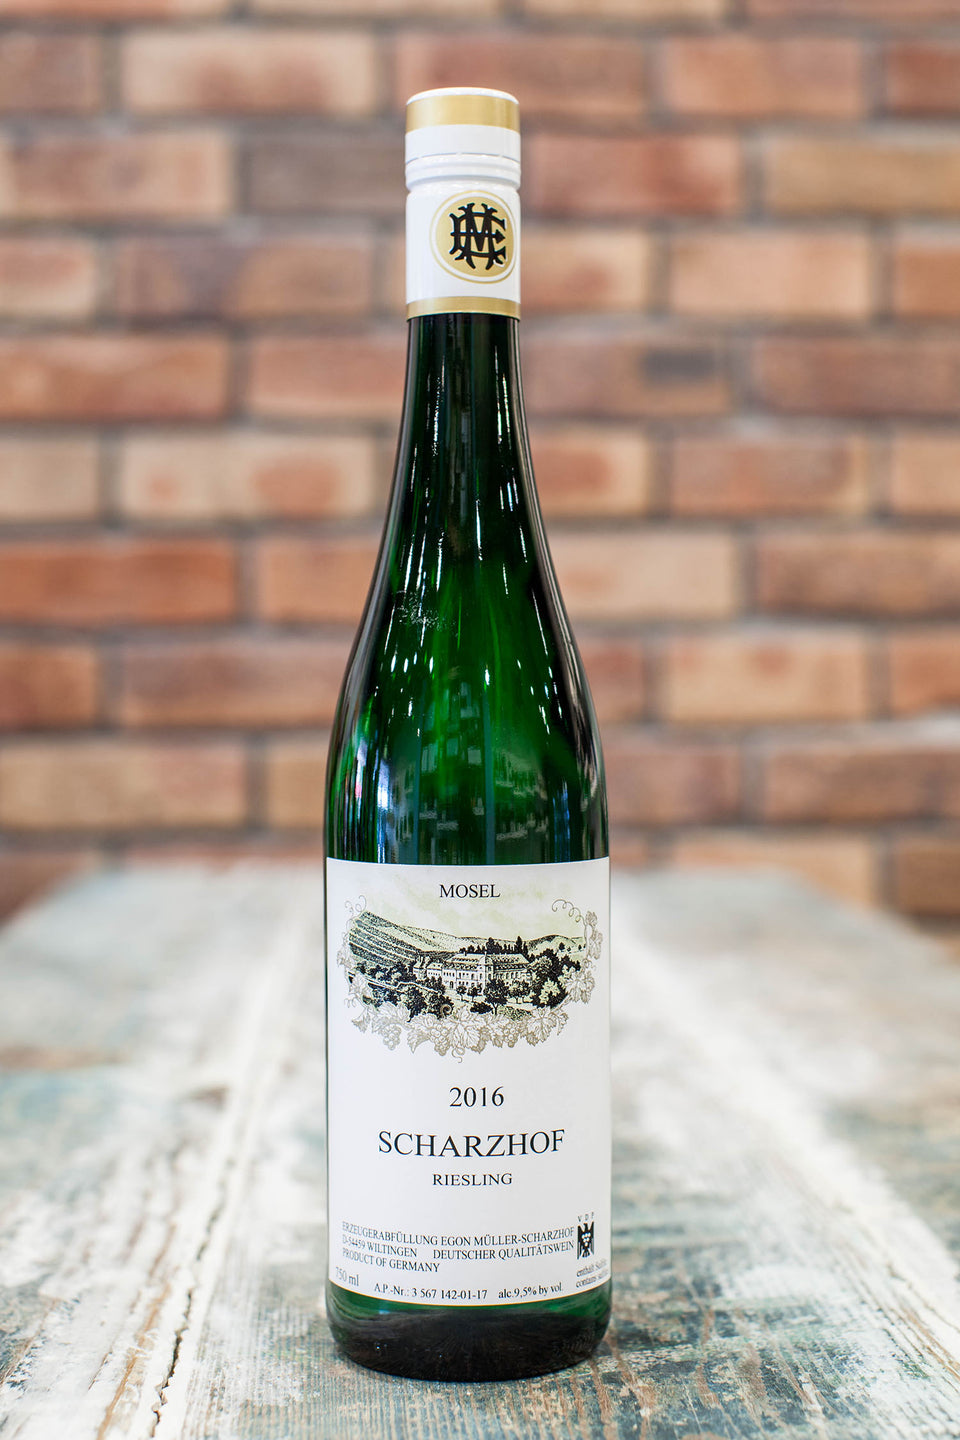 2018 Egon Müller 'Scharzhof' Riesling, Mosel